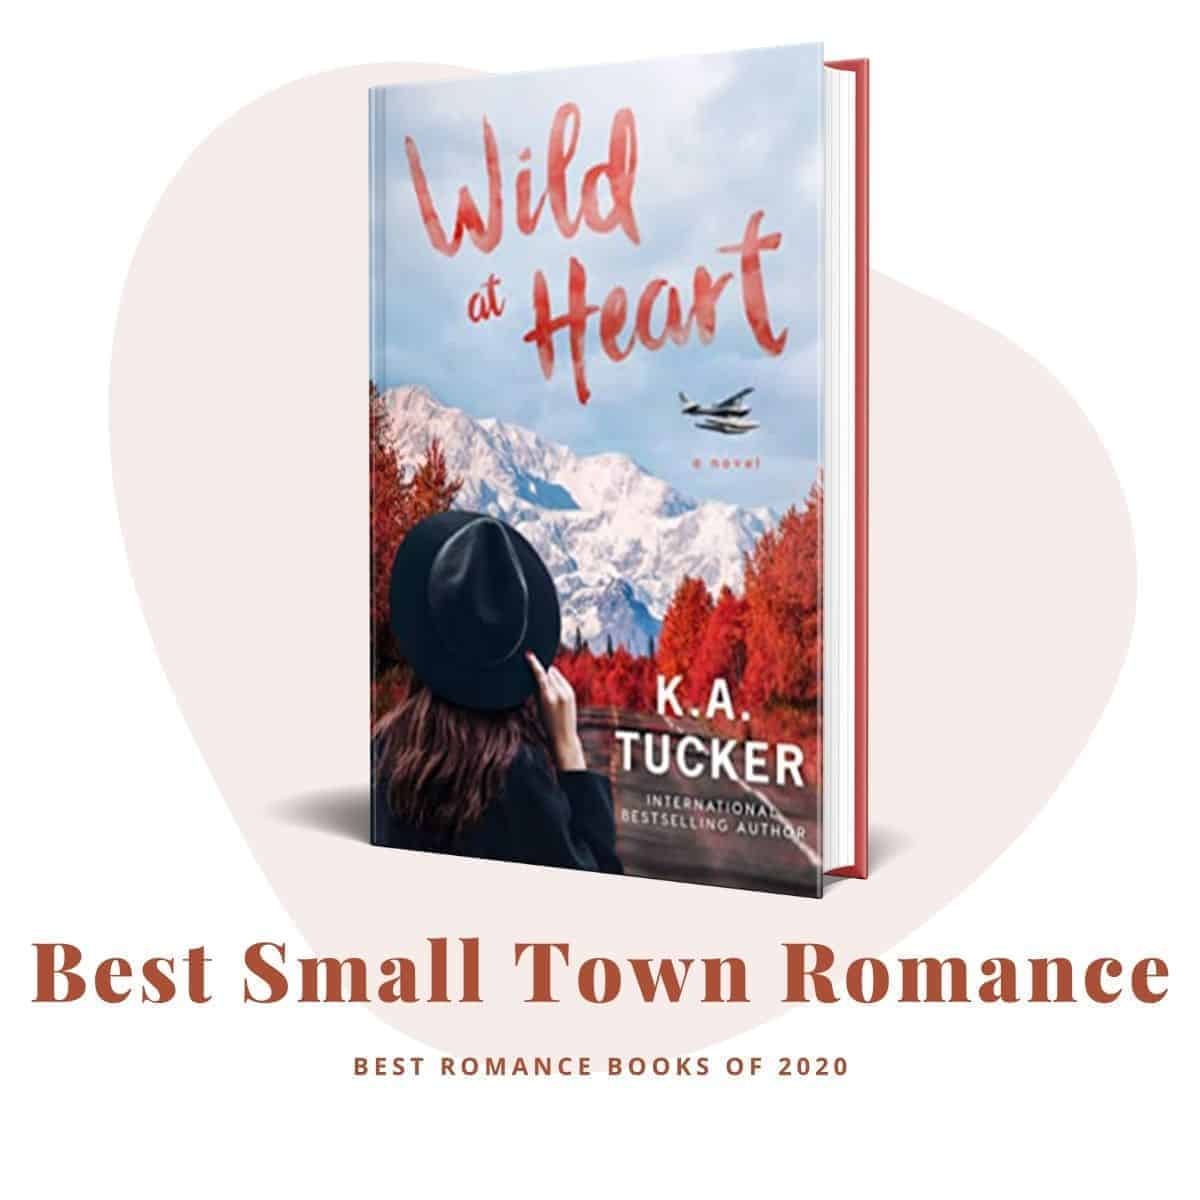 Best Romance Books 2020-Wild at Heart